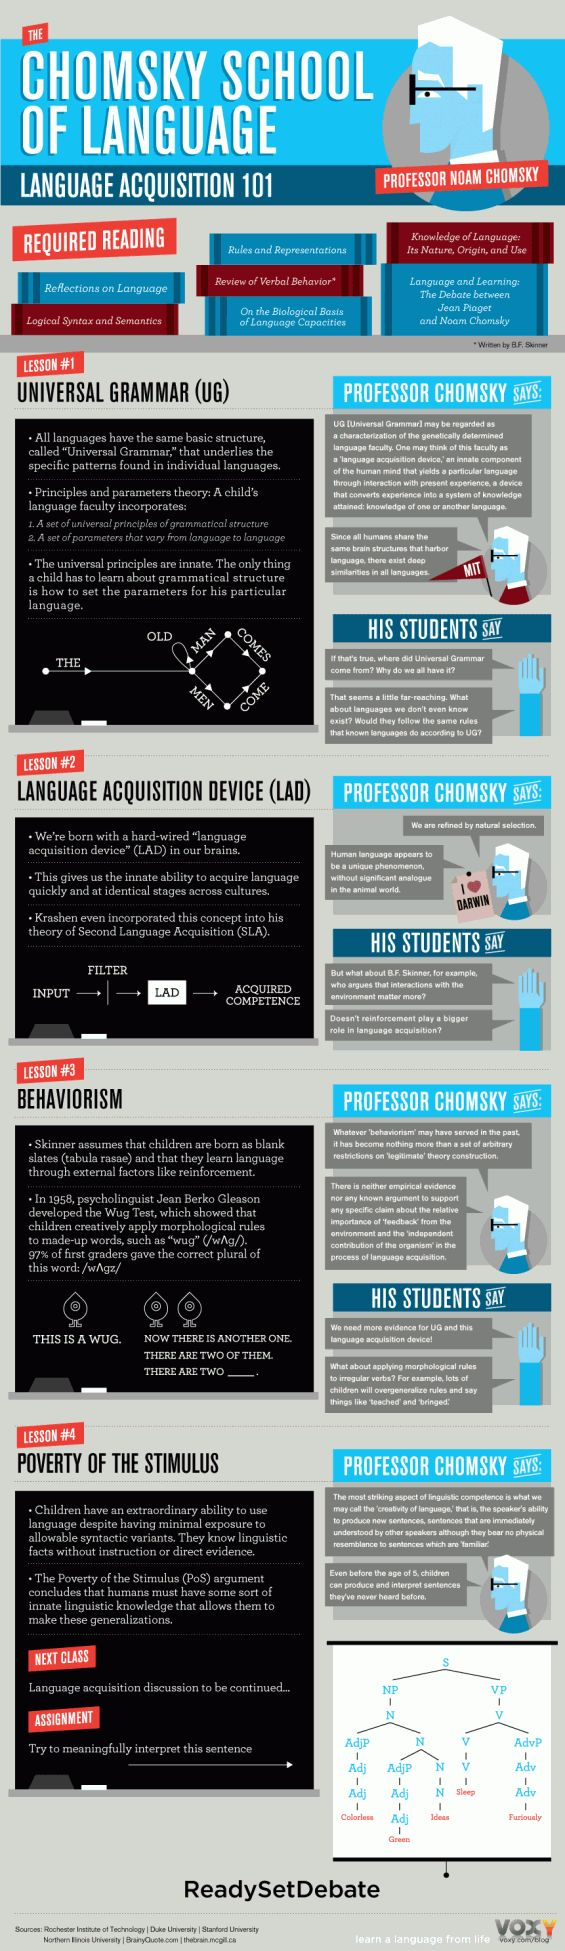 The Chomsky School of Language - Re-pinned by #PediaStaff.  Visit http://ht.ly/63sNt for all our pediatric therapy pins